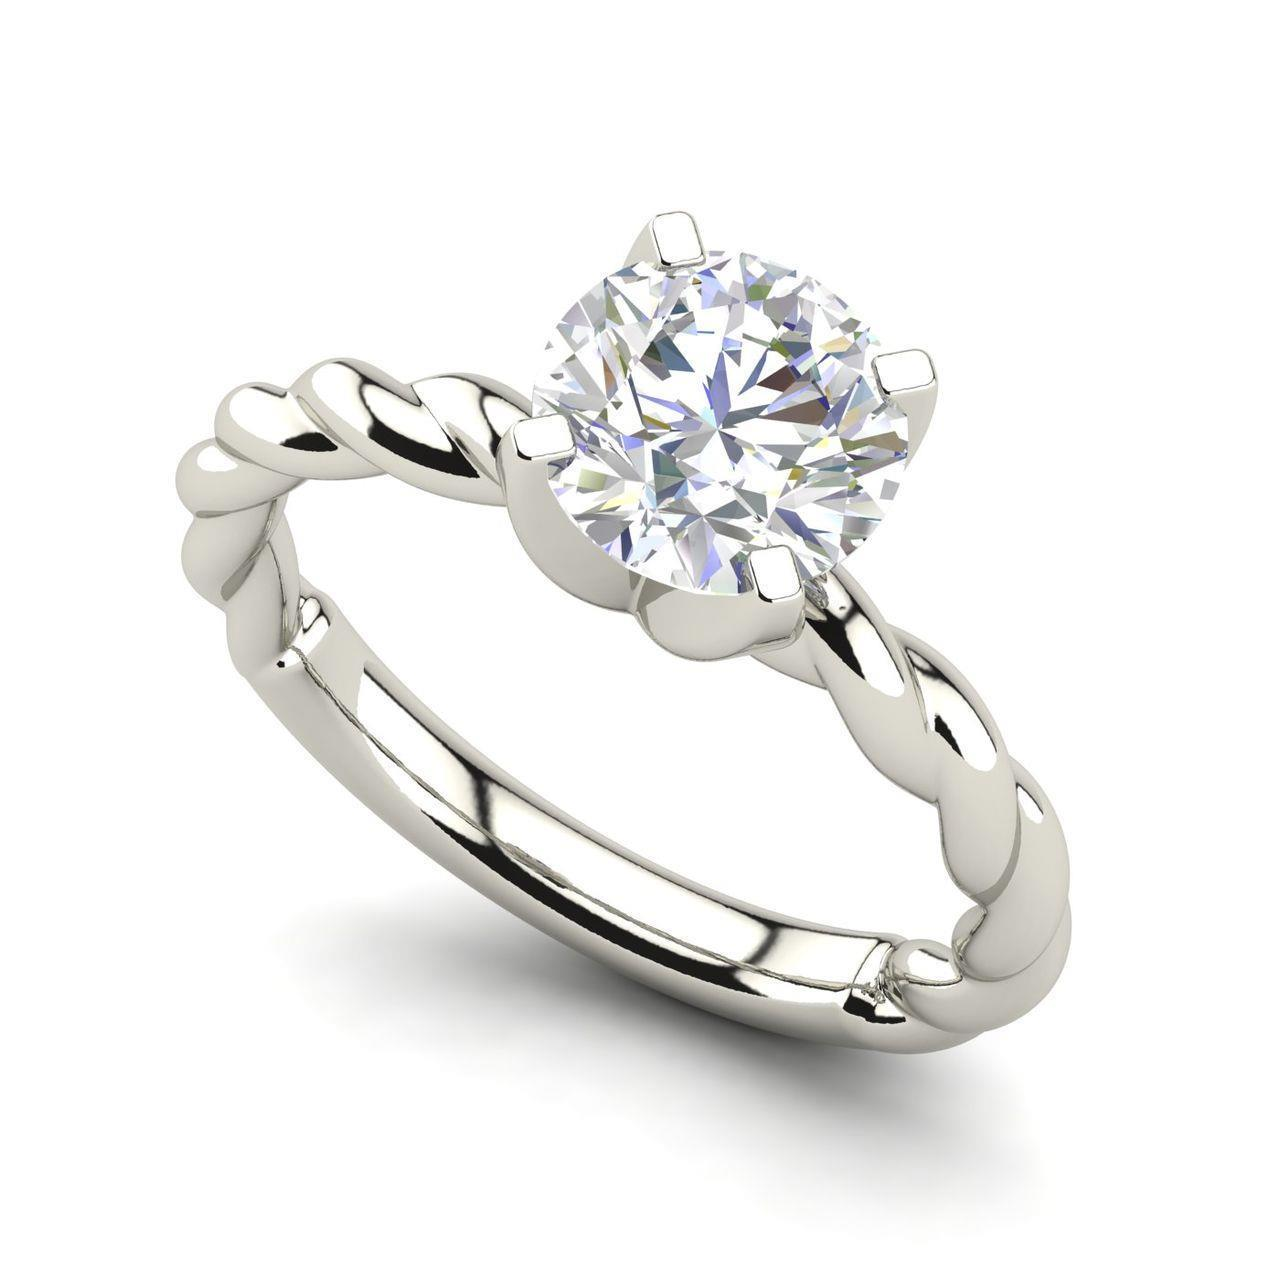 Jewelry & Watches Diamond Latest Collection Of Carat London Engagement Ring White Gold 1.5 Carat Princess Cut Diamond Solitaire